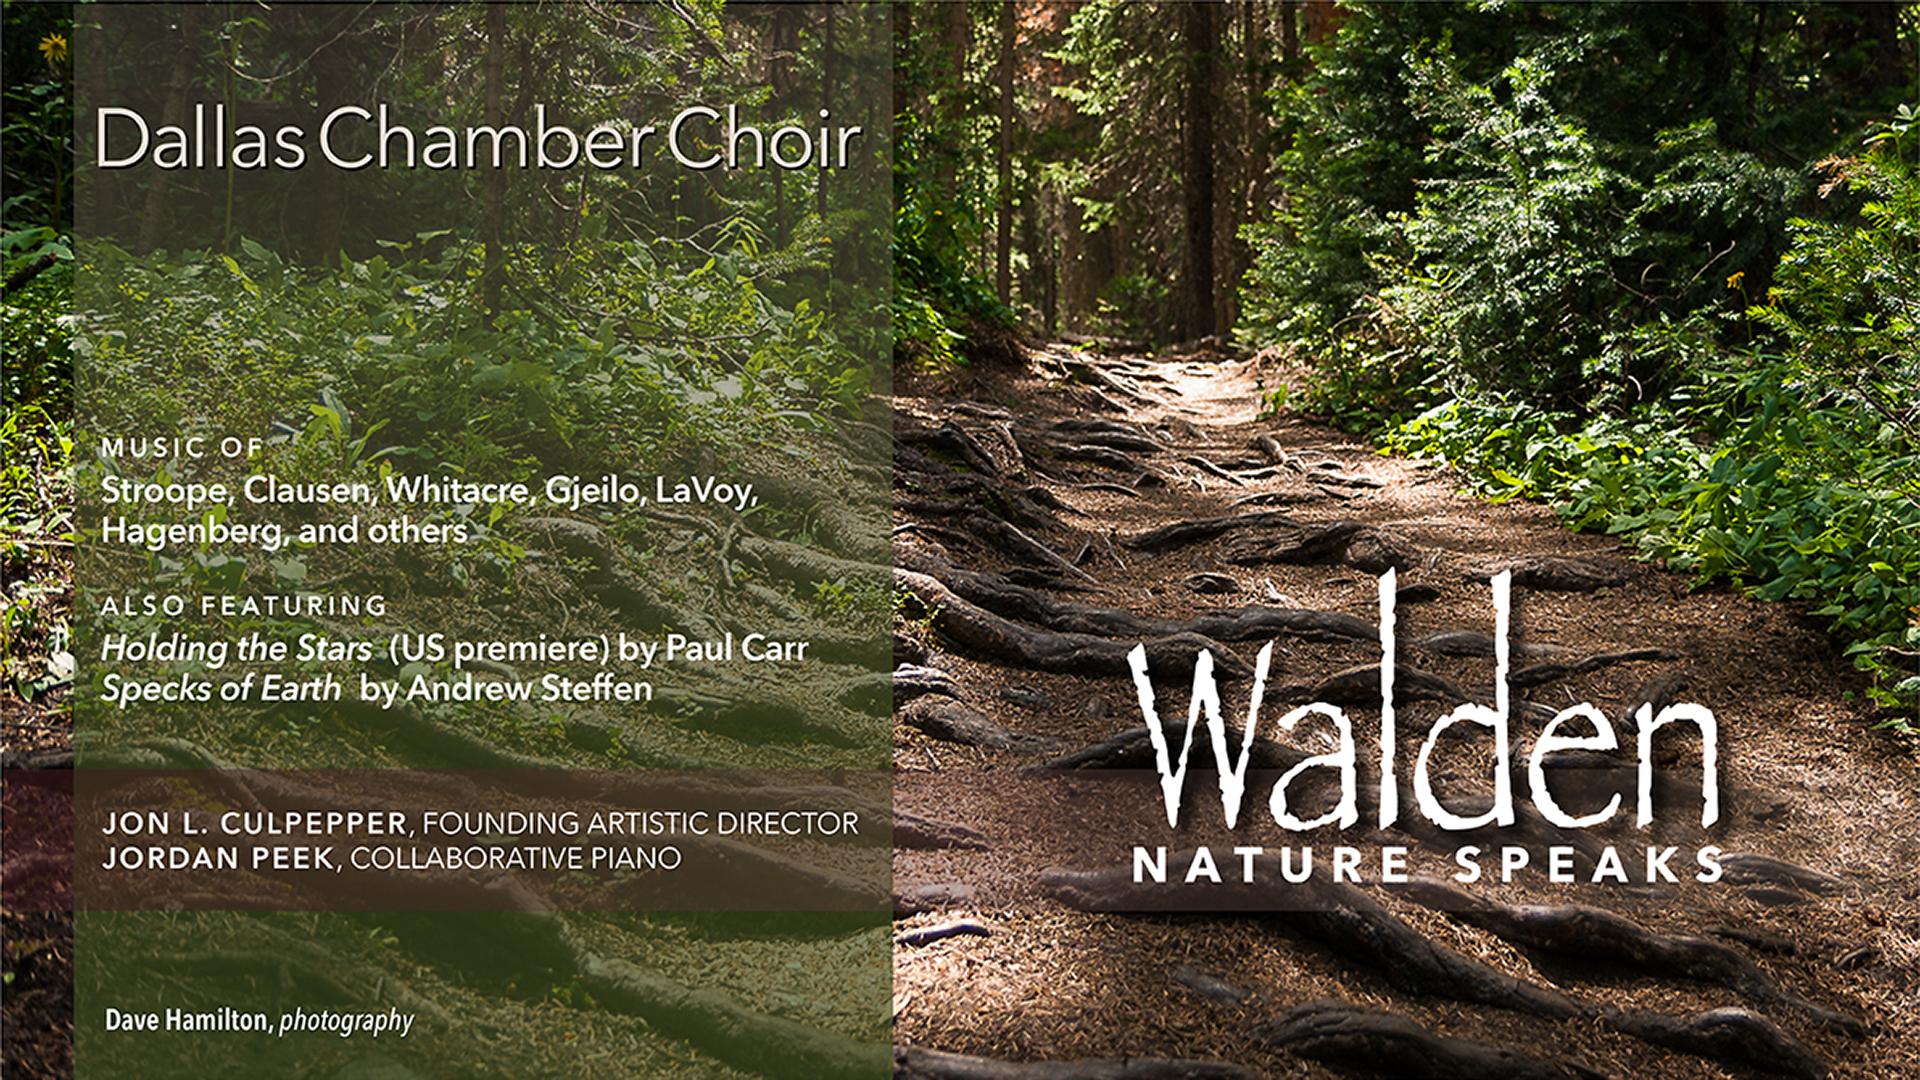 Purchase tickets online:  https://www.eventbrite.com/e/walden-nature-speaks-friday-091319-dallas-chamber-choir-moody-performance-hall-tickets-69595254279